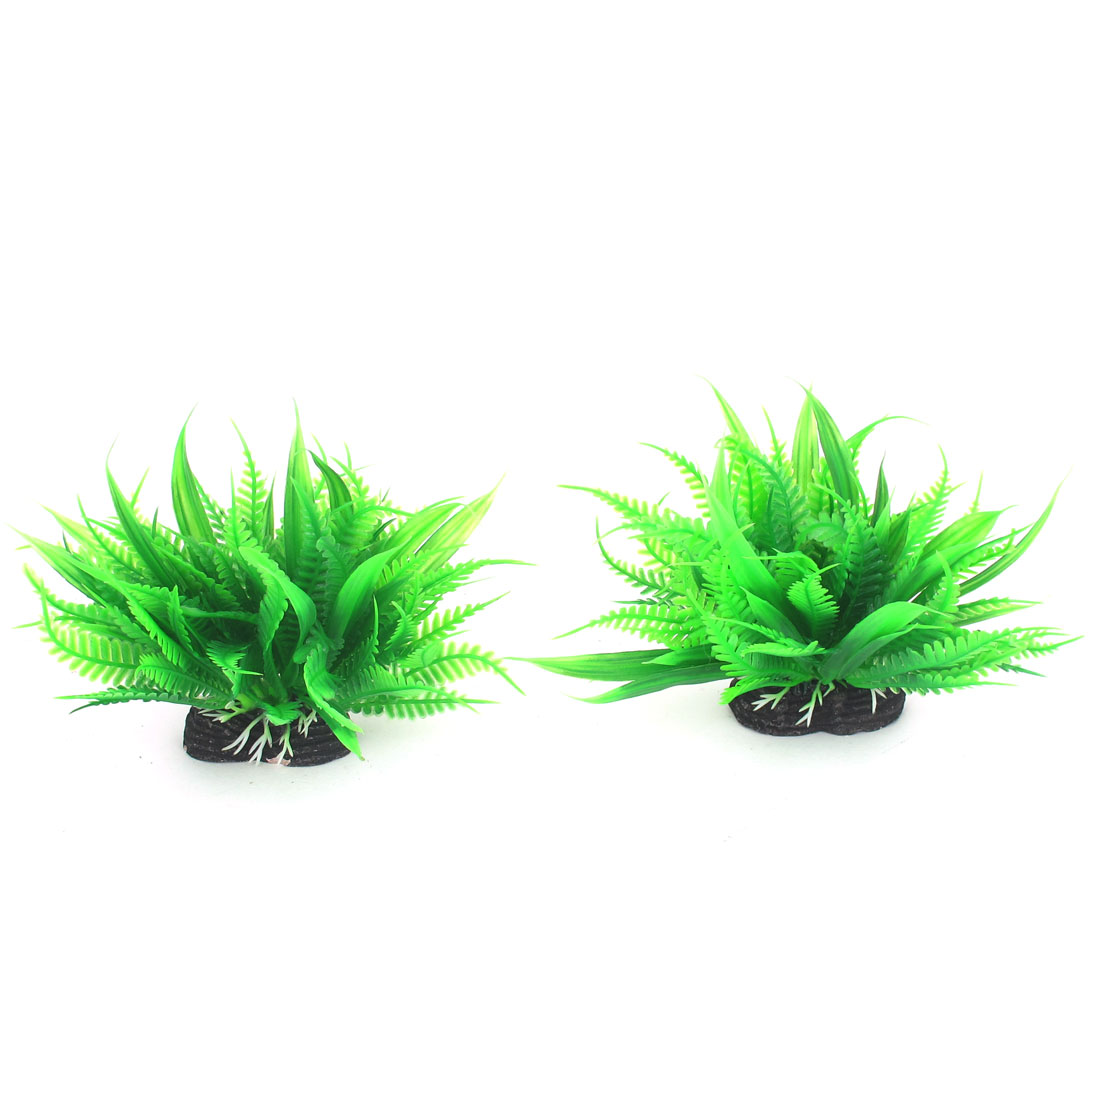 2pcs Green Plastic Emulational Aquarium Plant Aquatic Grass Decor for Fishbowl Fish Tank